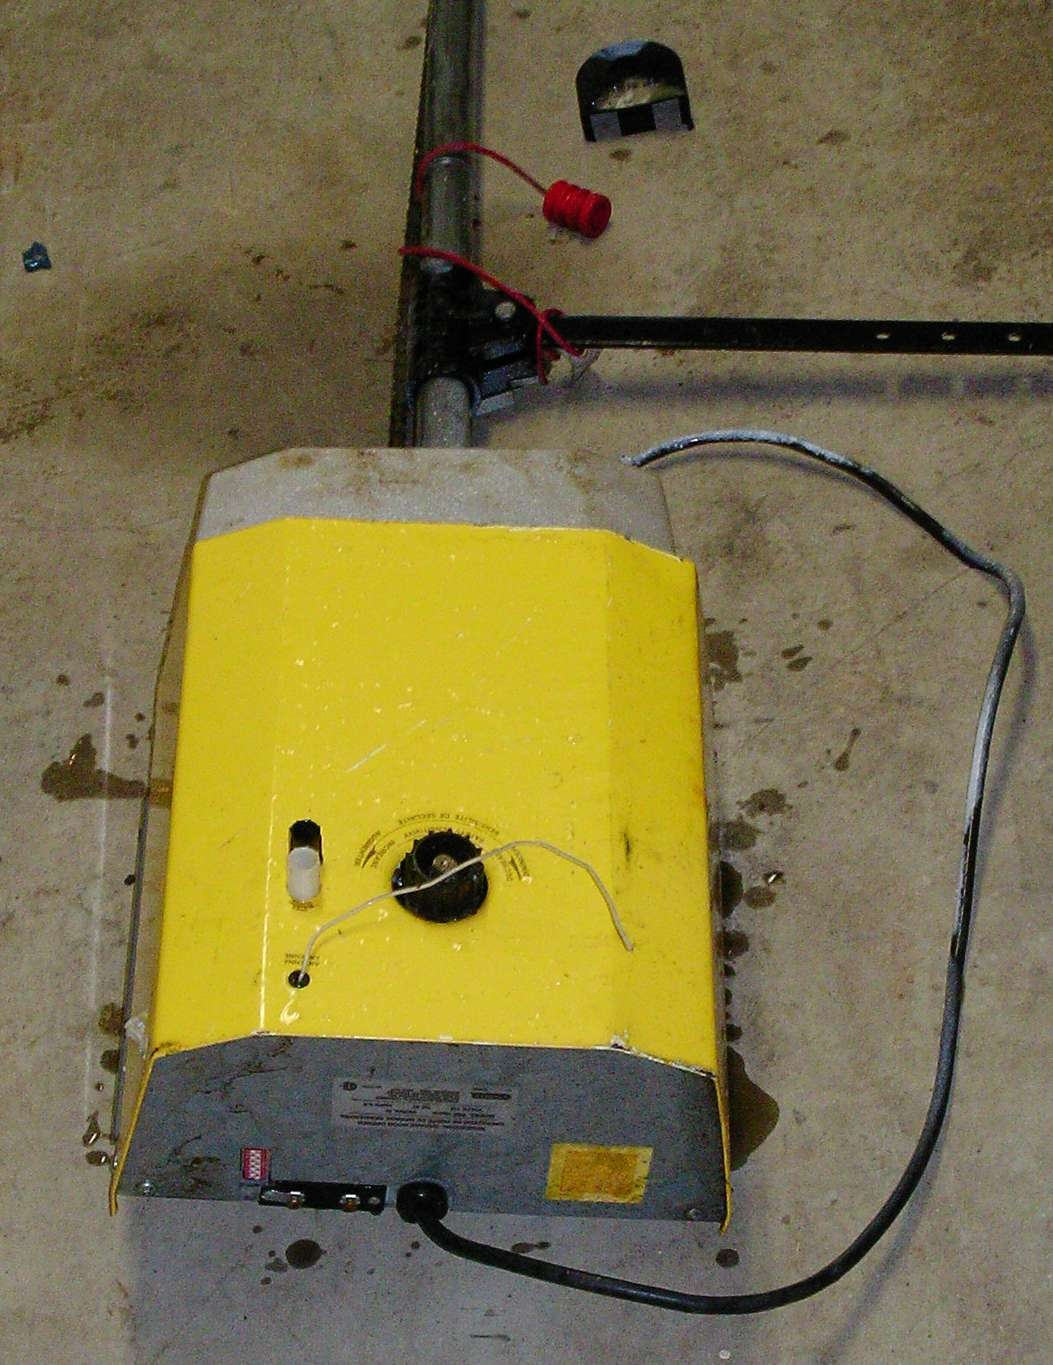 Stanley Vemco Garage Door Opener Troubleshooting Designs